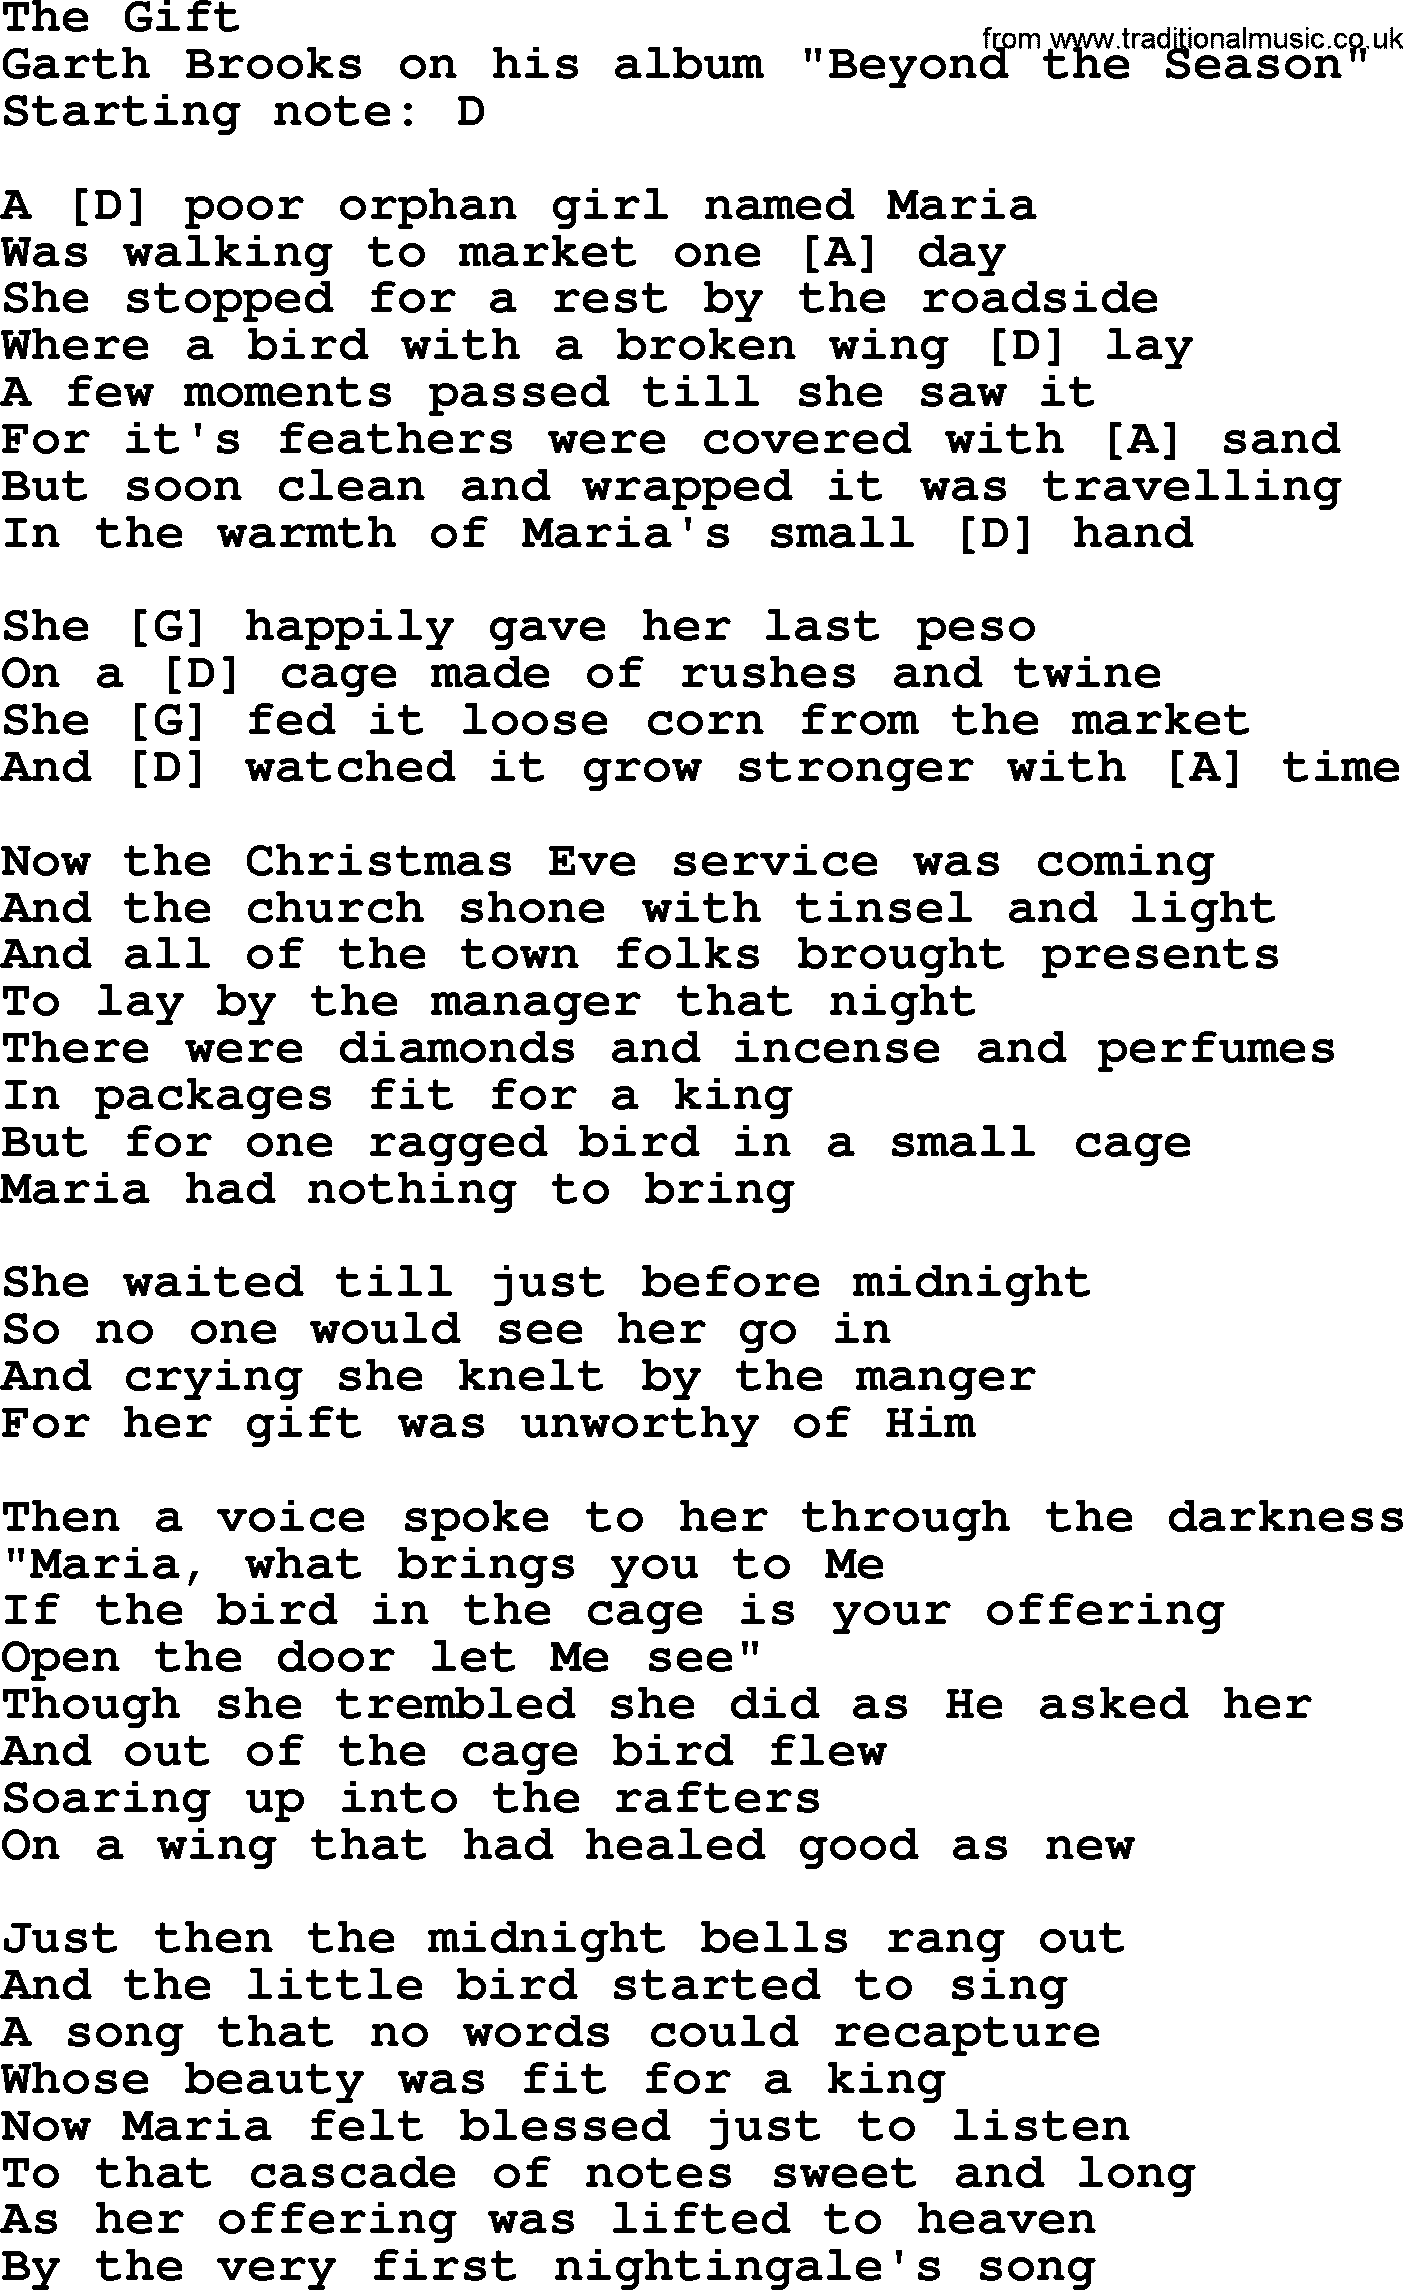 The Gift, by Garth Brooks - lyrics and chords